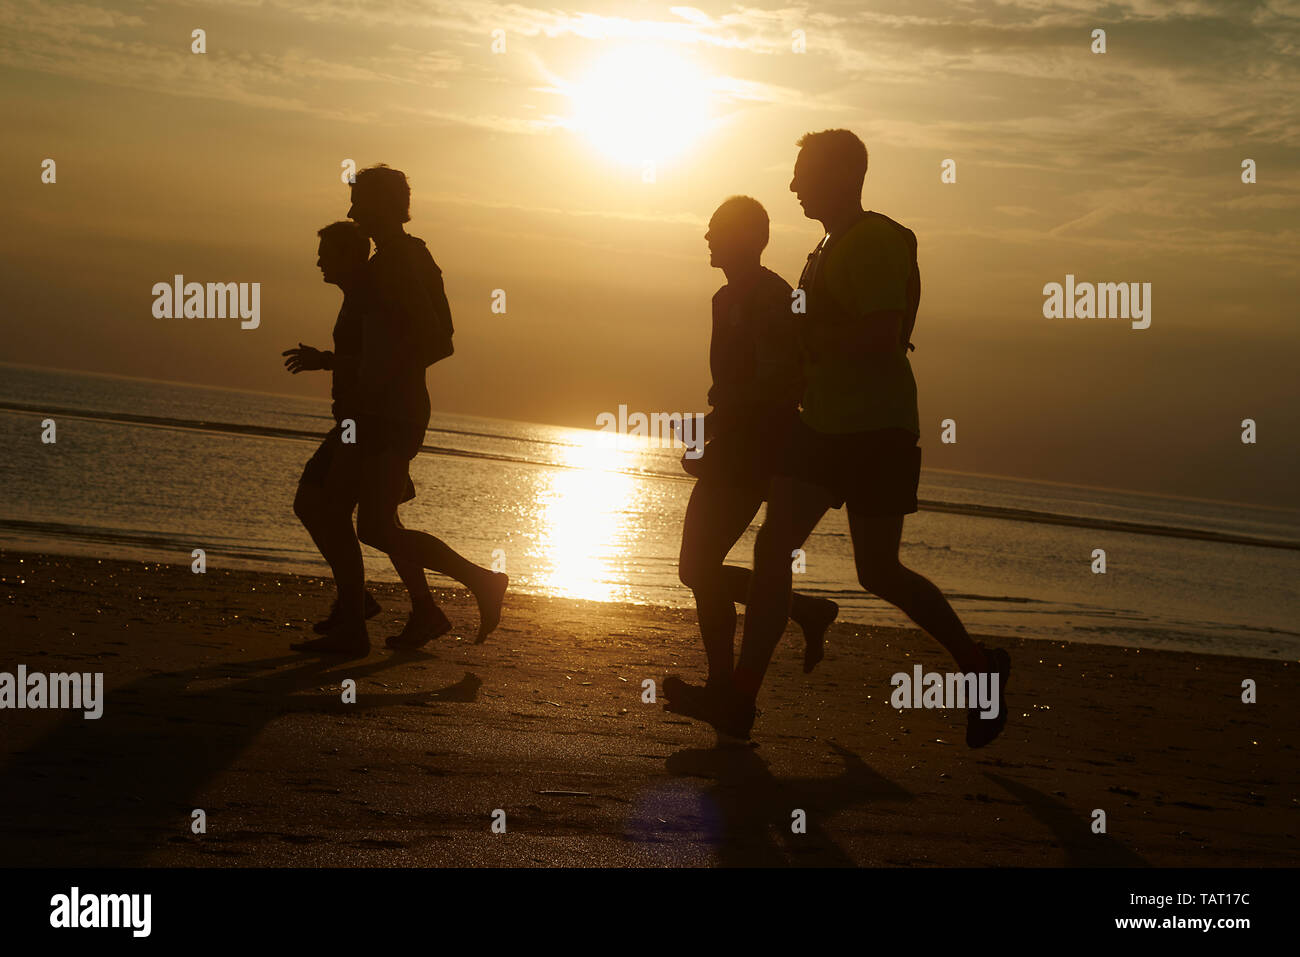 Silhouette of a group of adults enjoying a run along the beach in golden light during sunset - Stock Image